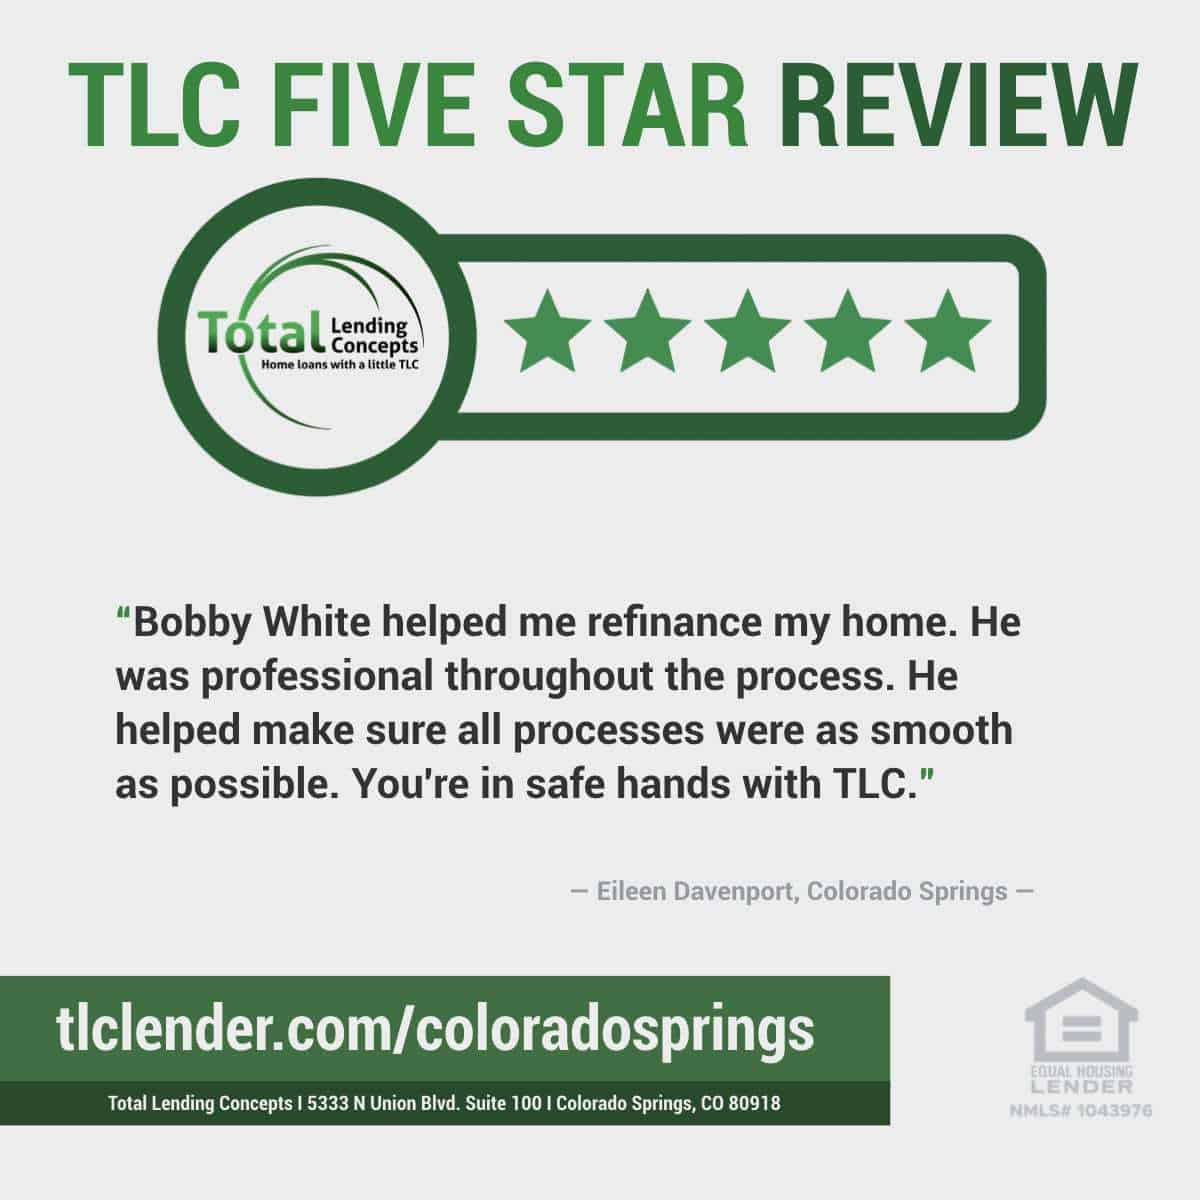 Total-Lending-Concepts-Five-Star-Review-Eileen-Davenport-in-Colorado-Springs-Colorado-for-Bobby-White-House-Mortgage